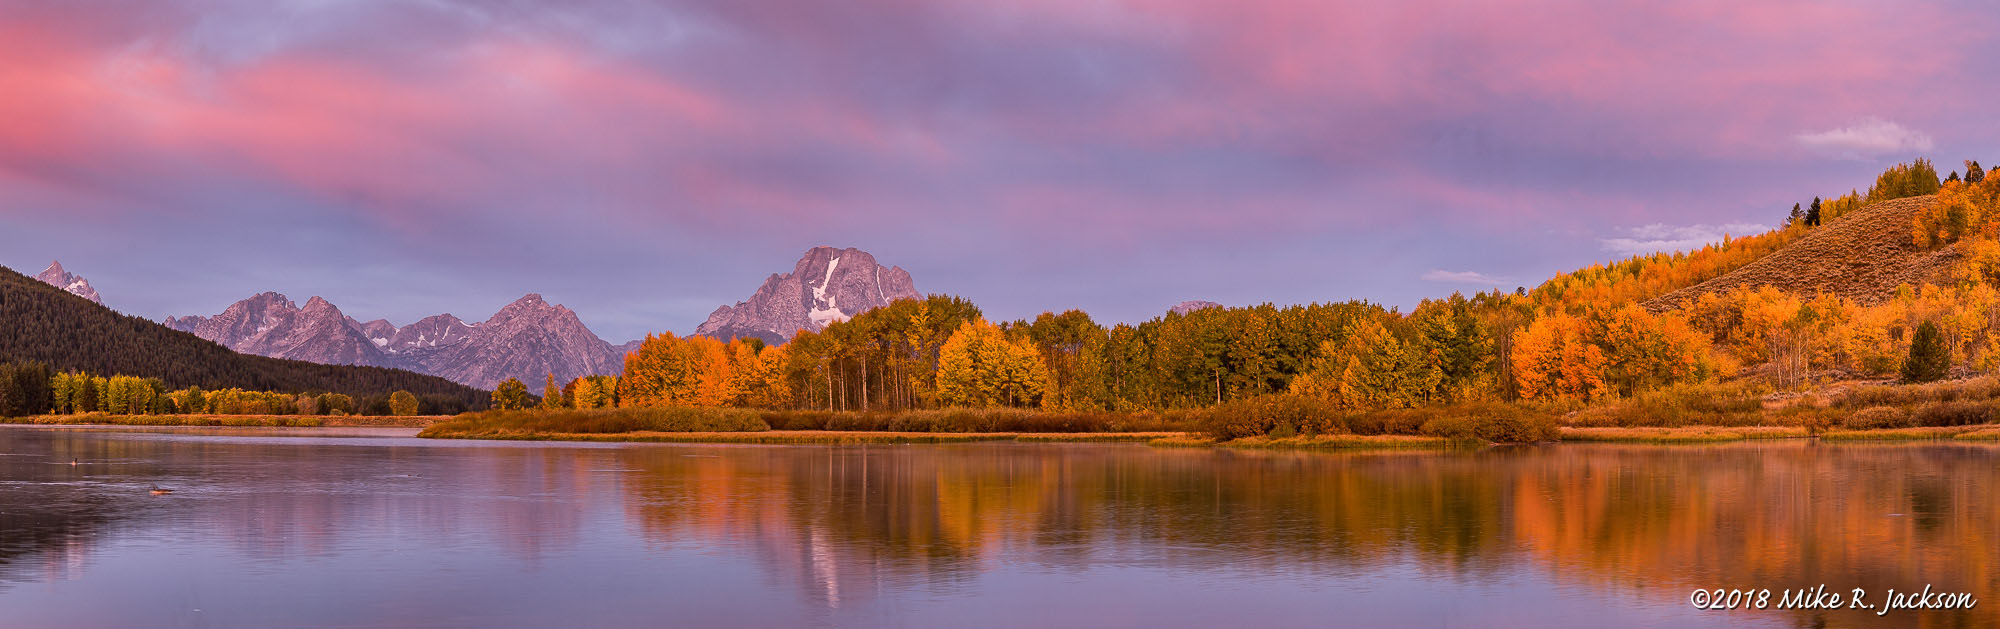 Alpenglow at Oxbow Bend